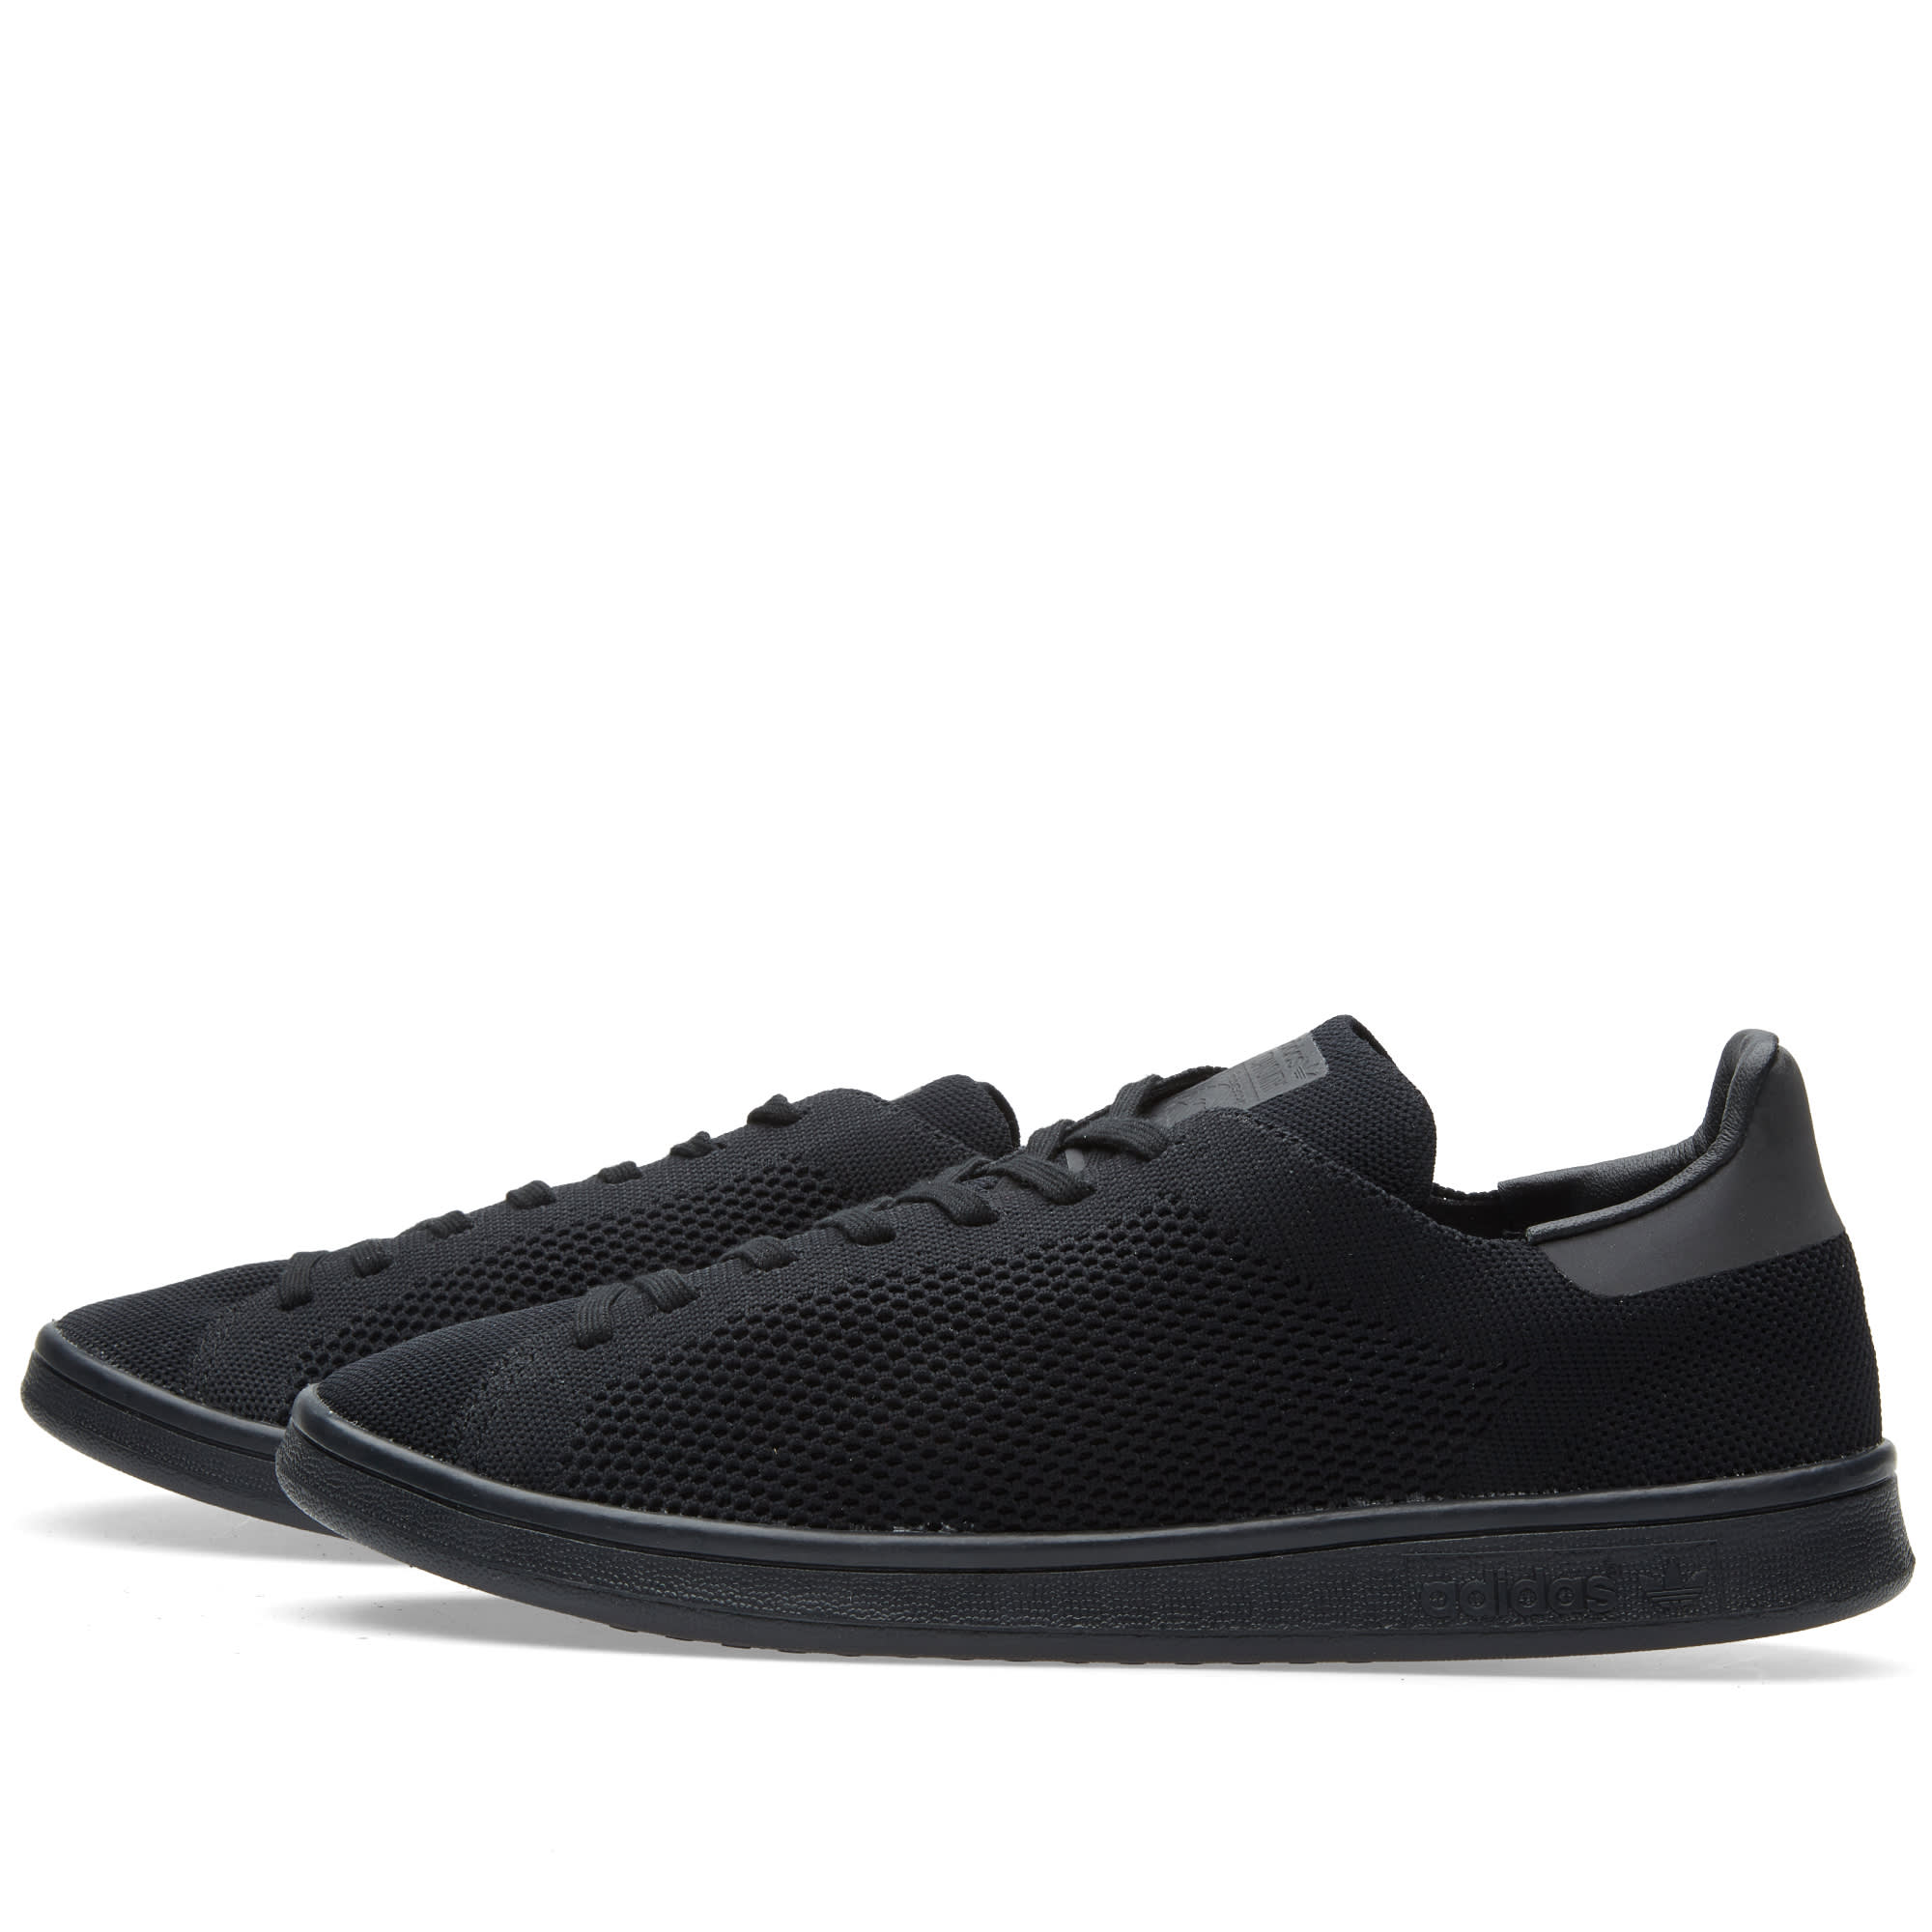 finest selection 478c7 194d3 Adidas Stan Smith Primeknit Core Black   END.